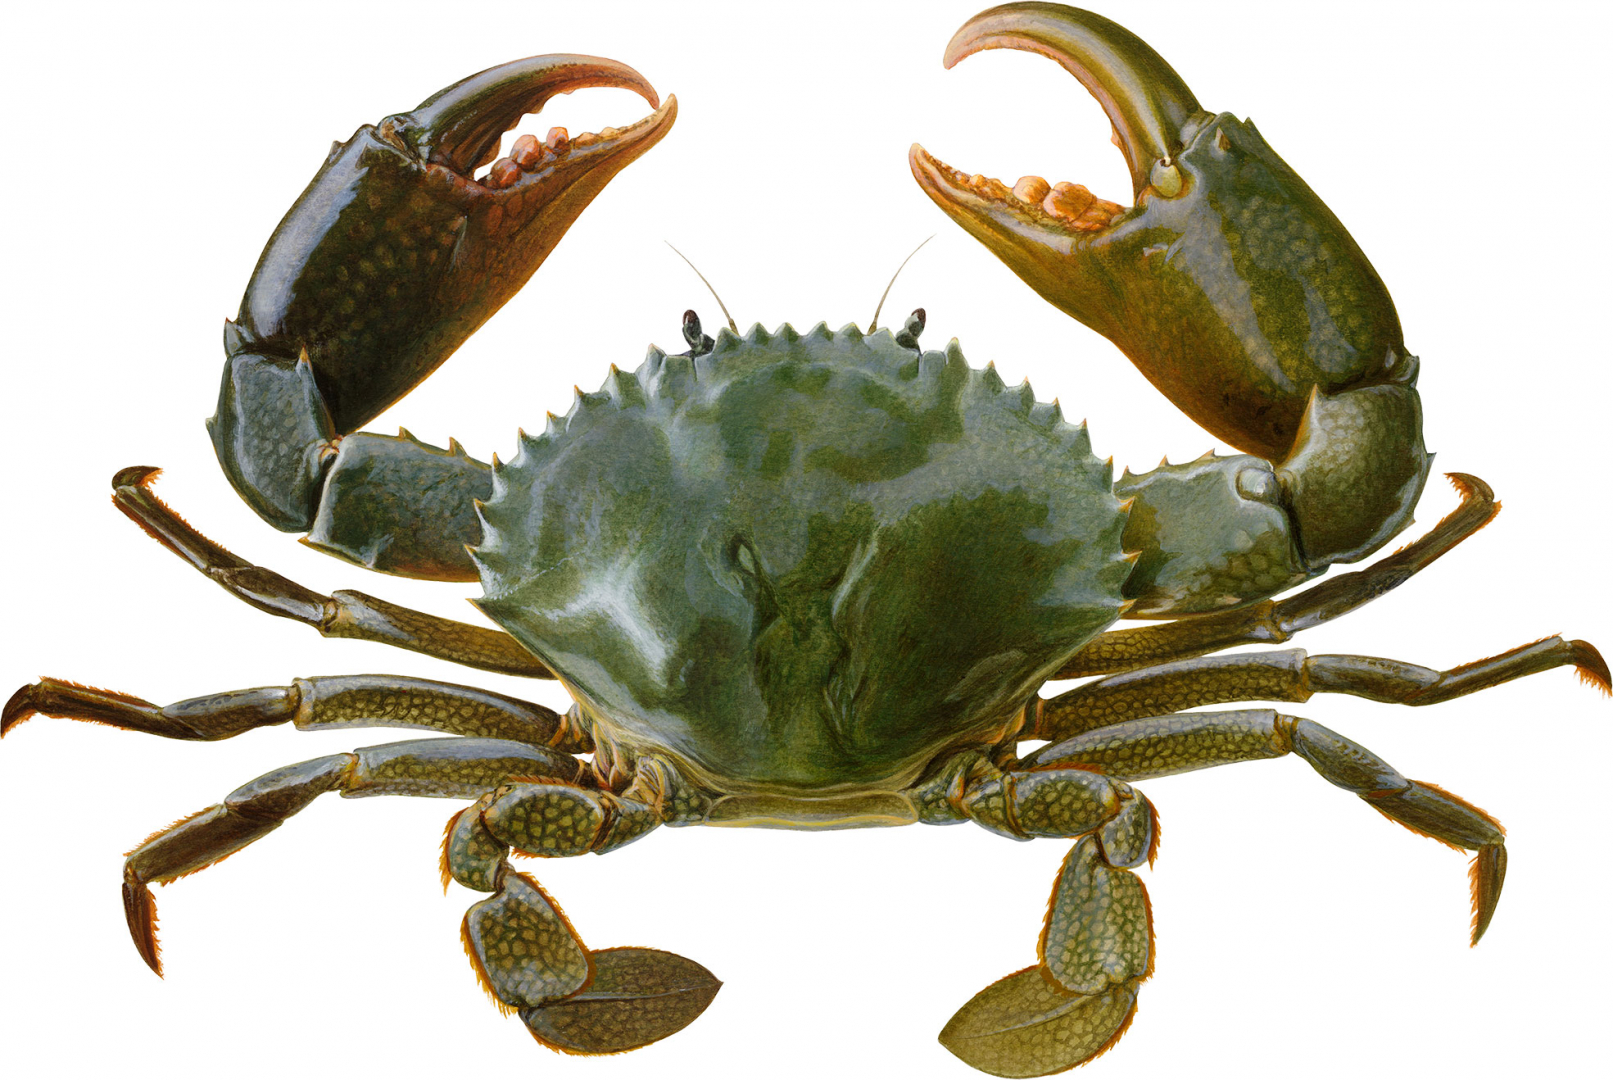 print-page-Crab-Mud-crustaceans-category